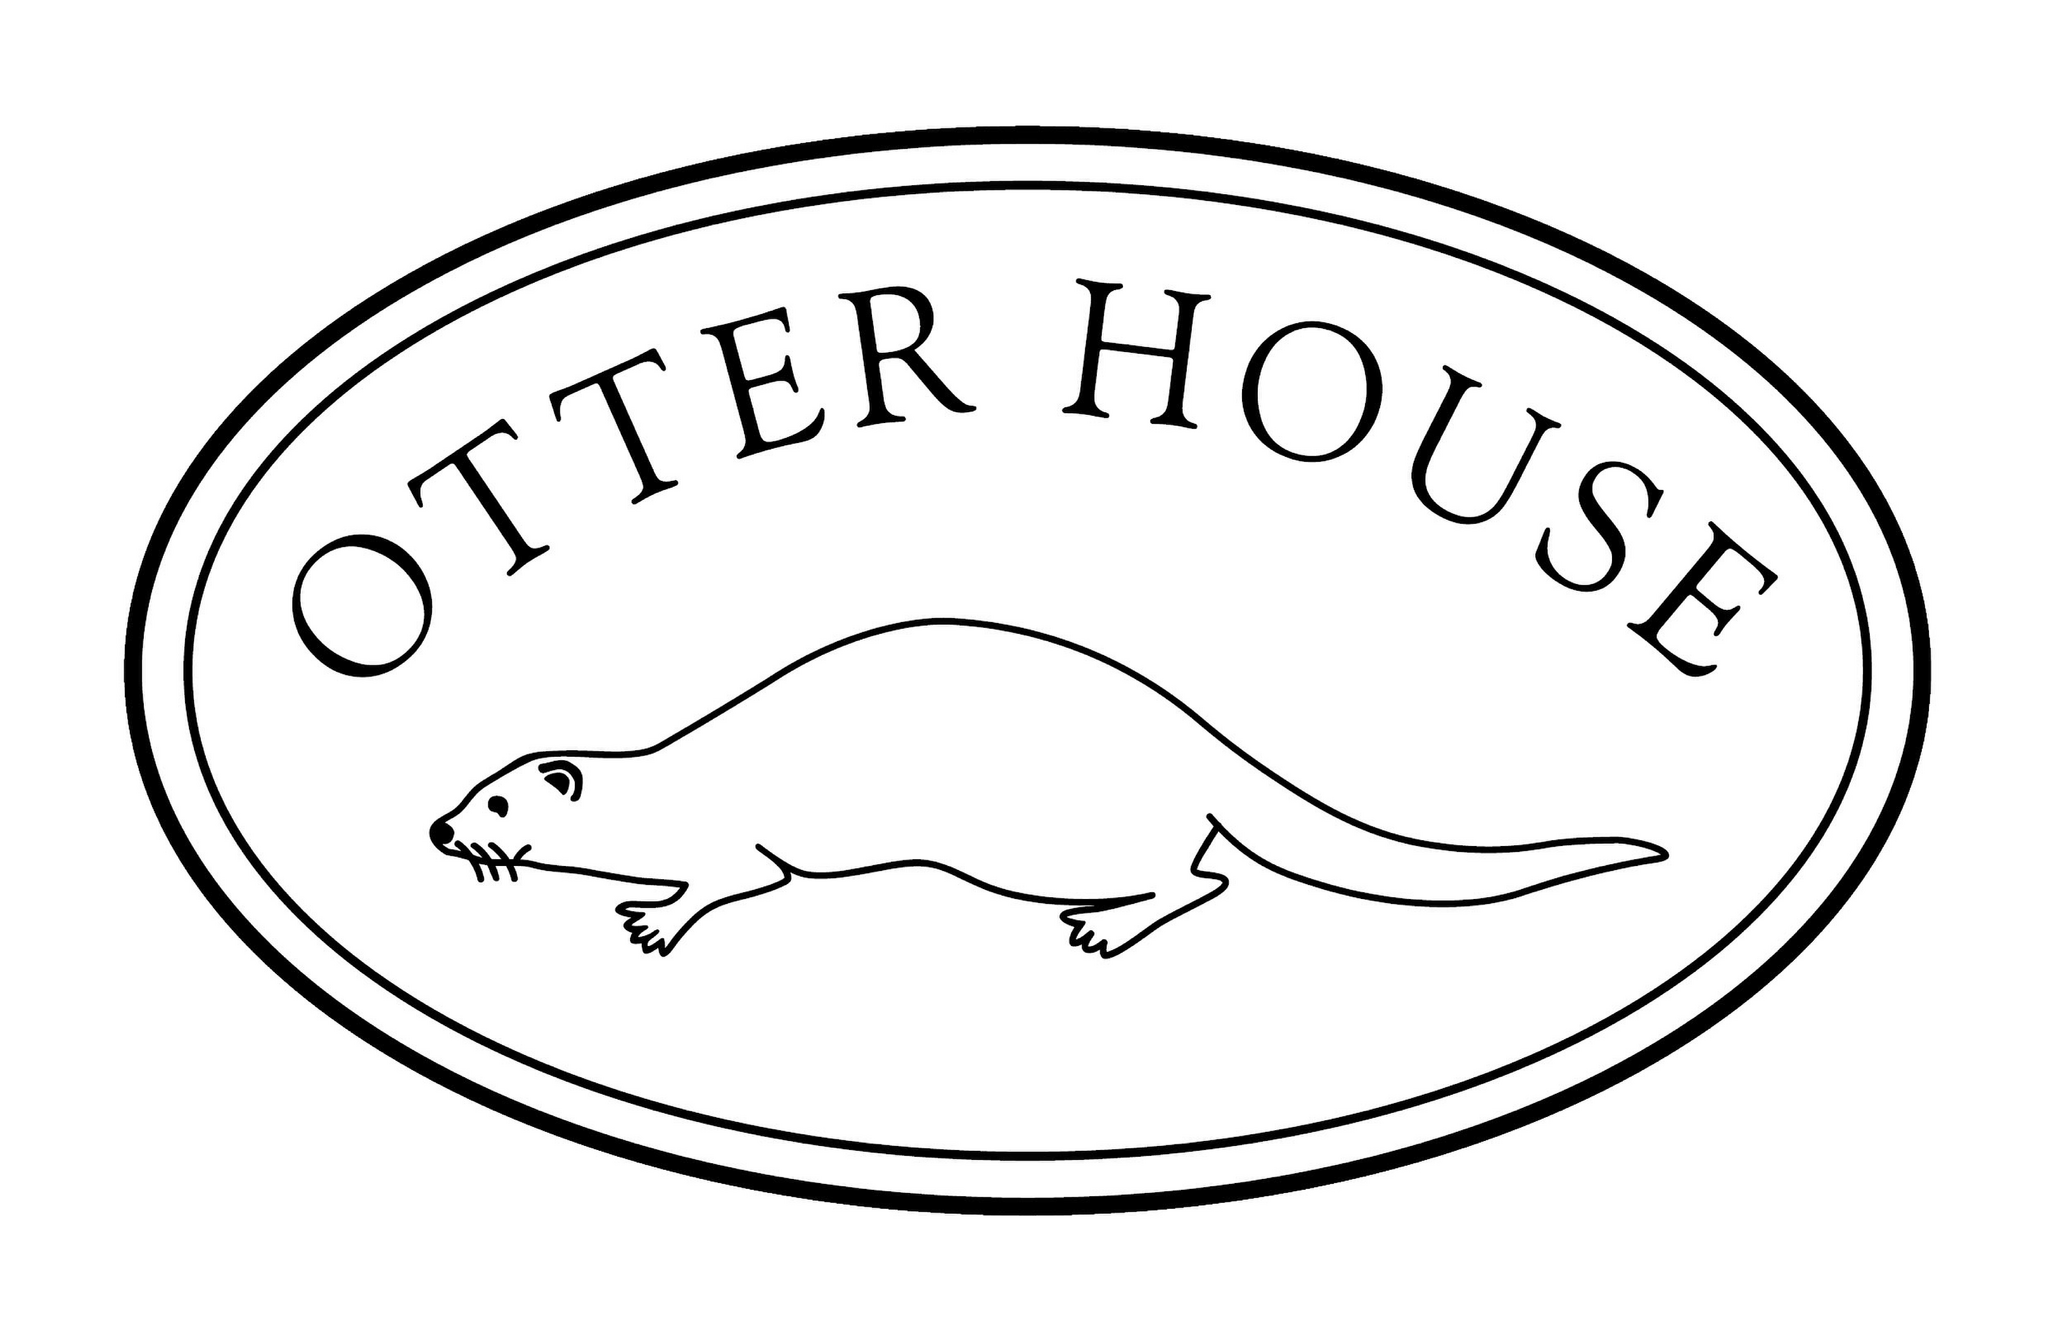 Otter House Ltd